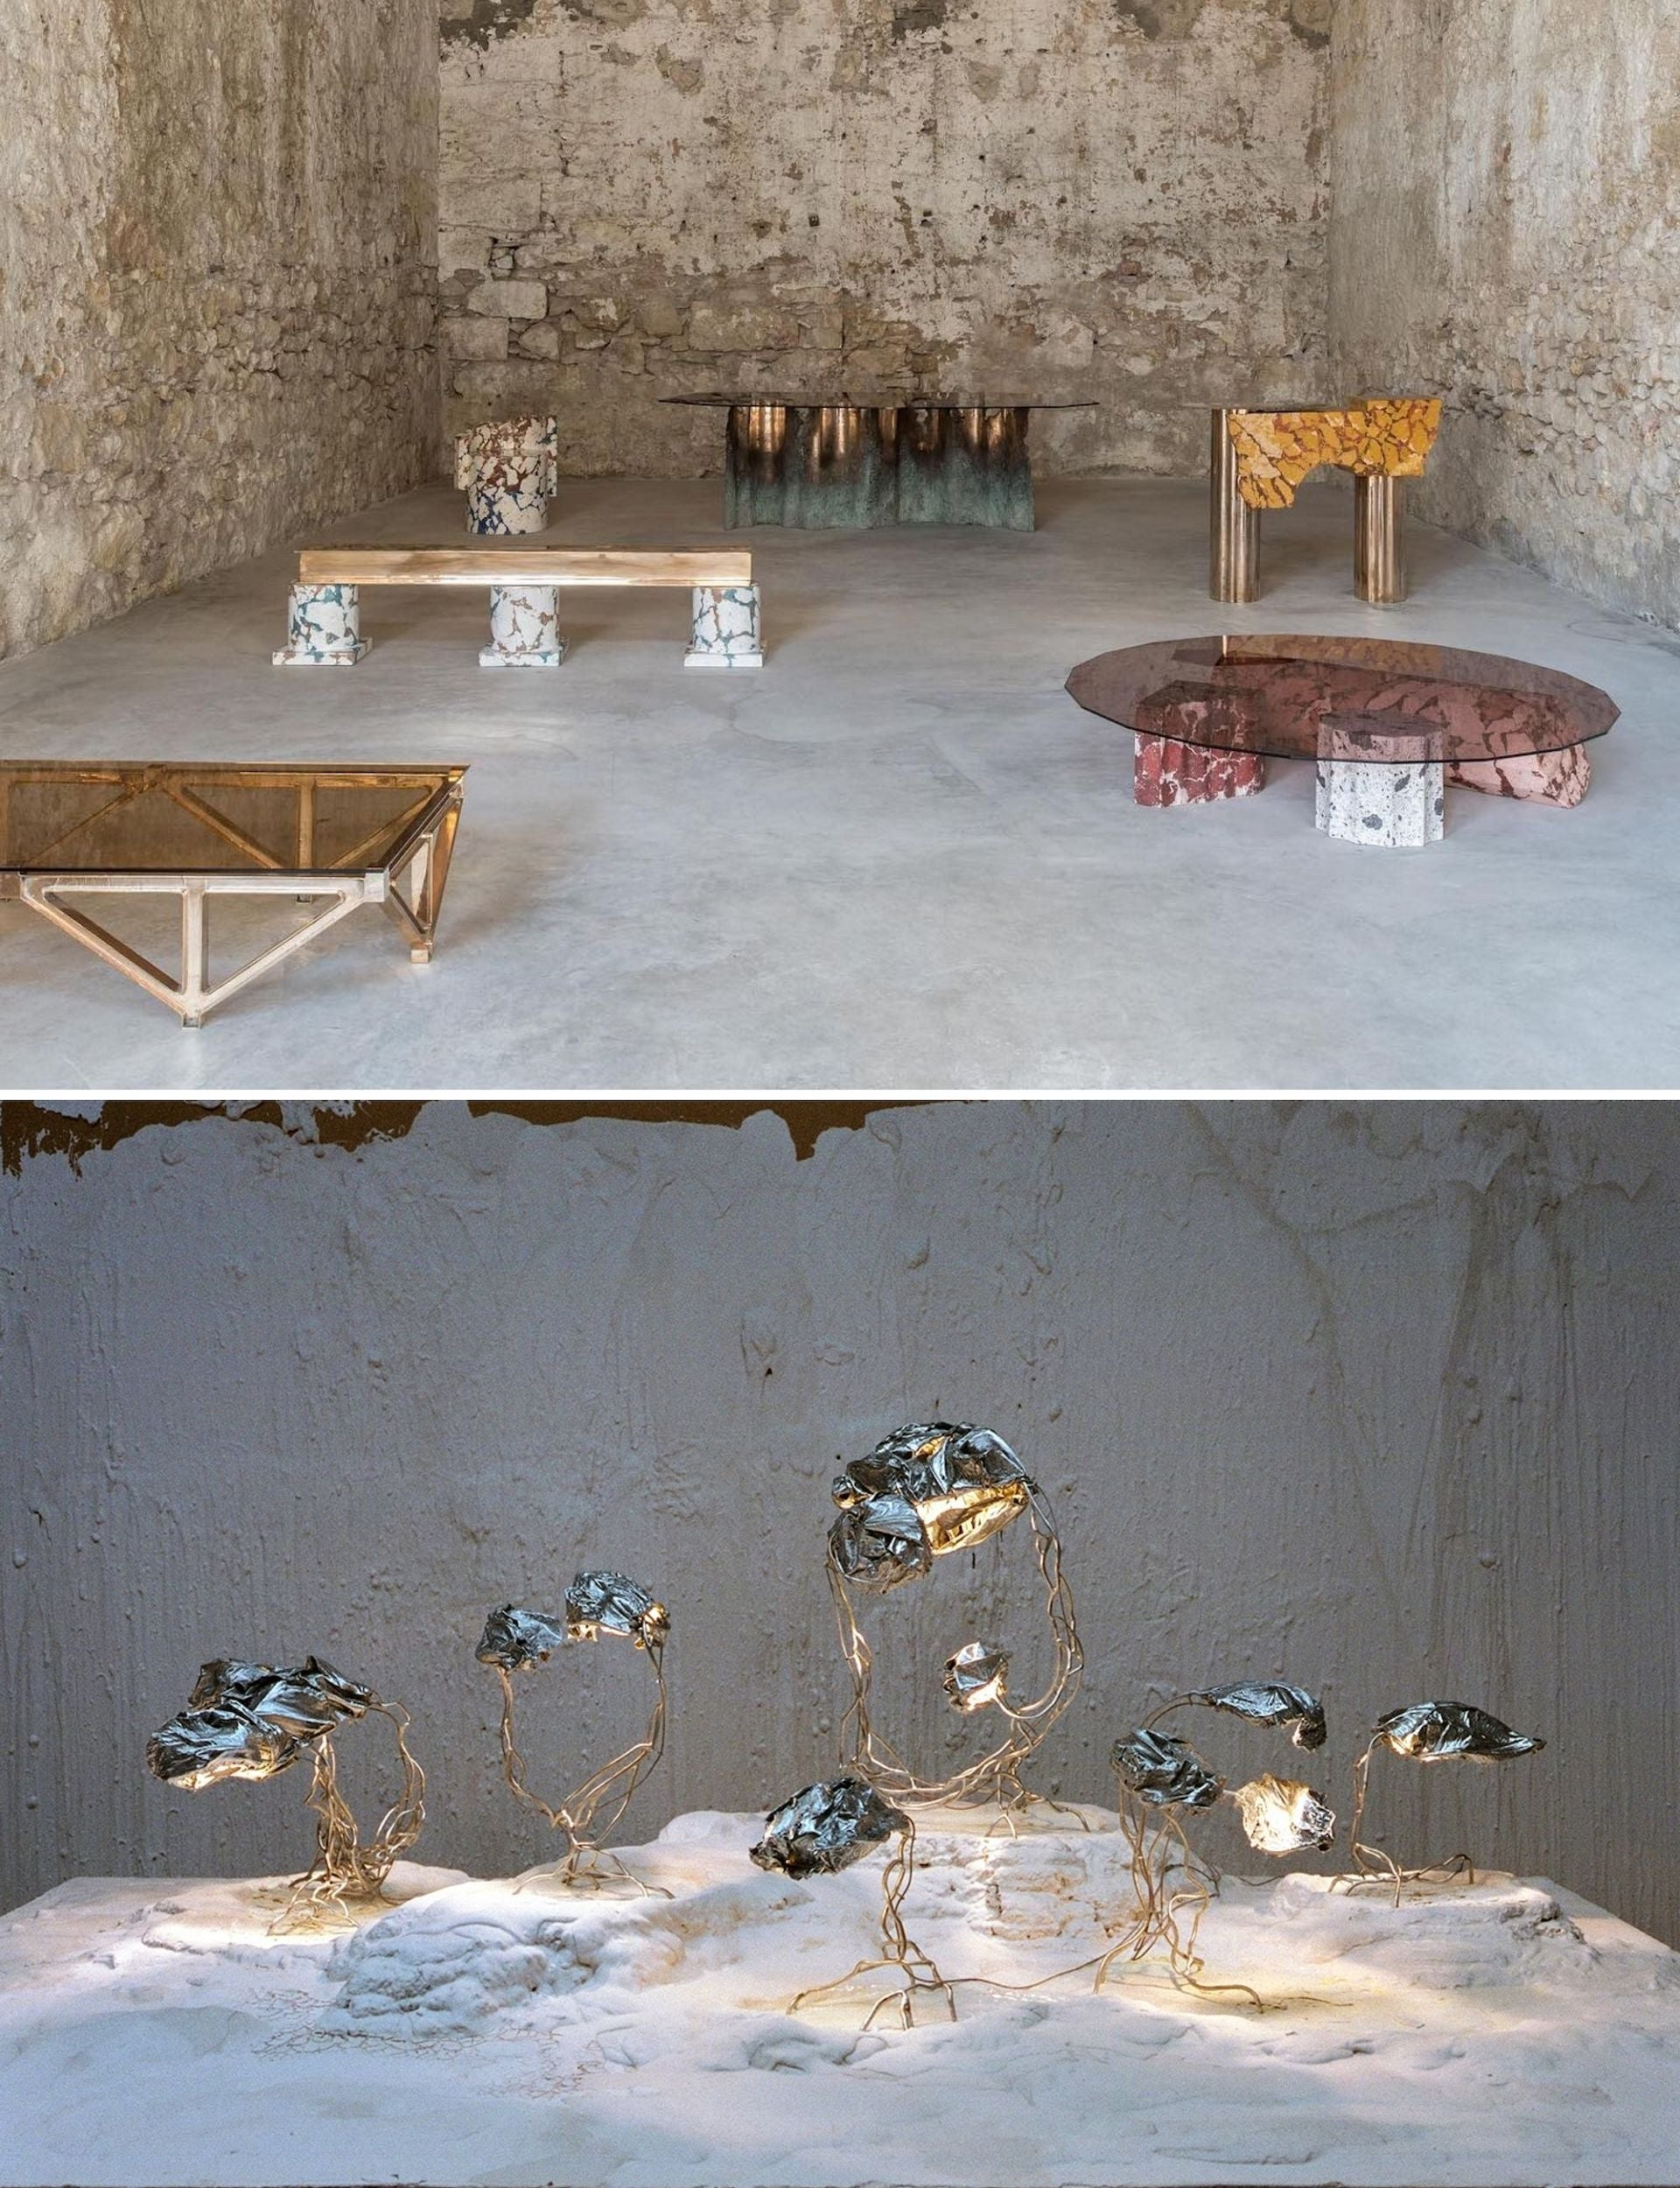 Design objects born of the Encoded Symbols residency in Turin. Top: RUINS: Encoded Symbols by Roberto Sironi at Carwan Gallery. Photo © Giorgos Sfakianakis; courtesy of Carwan Gallery | Bottom: Encoded Symbols: Protoplasting Nature by Marcin Rusak. Photo by Kasia Bielska; © Marcin Rusak Studio